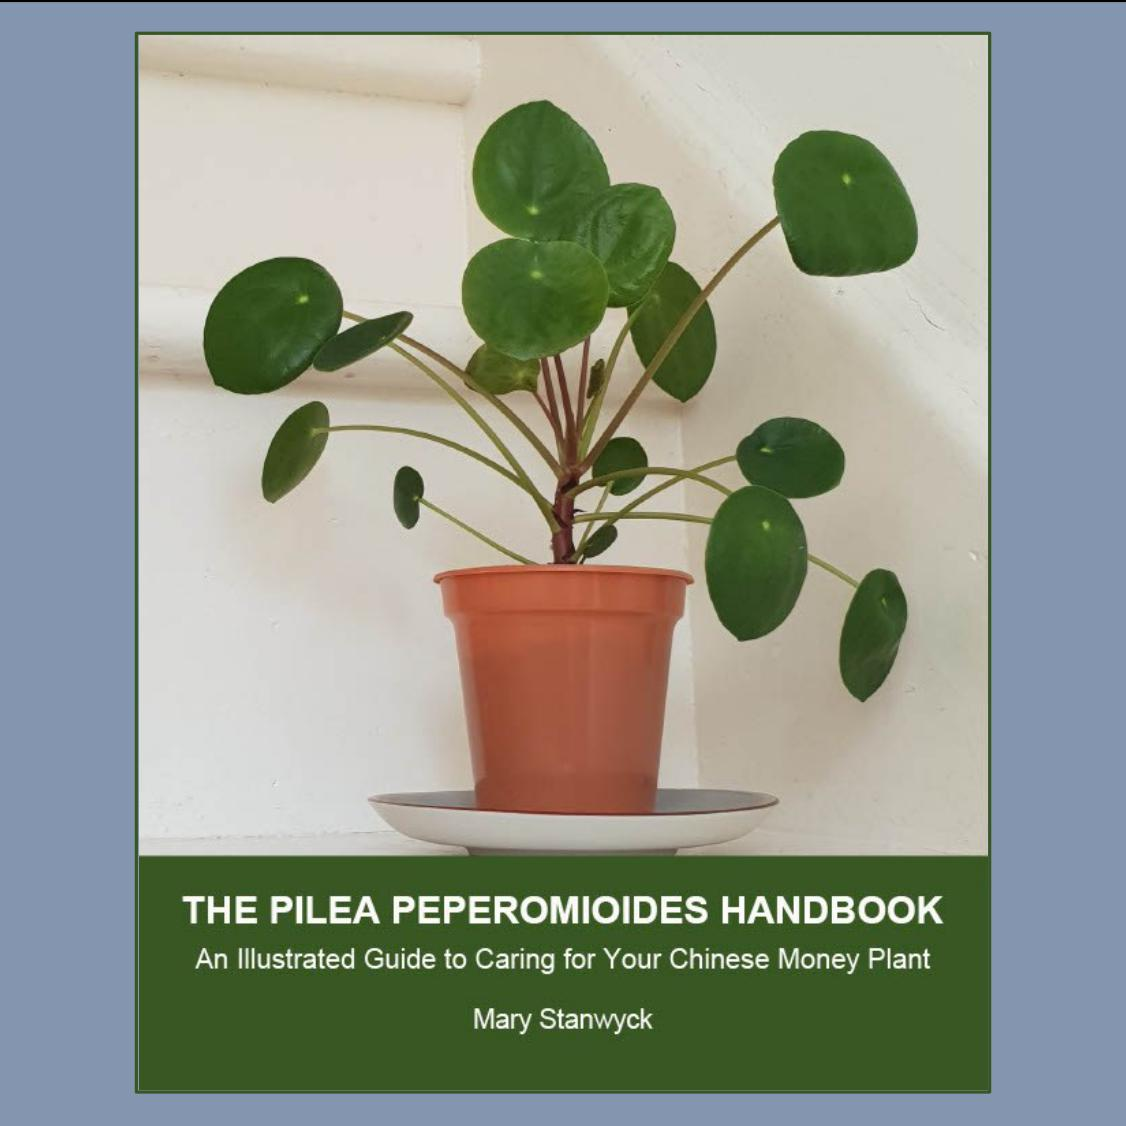 The Pilea Peperomioides Handbook: An Illustrated Guide to Caring for Your Chinese Money Plant by Mary Stanwyck – New Book Release Available Now